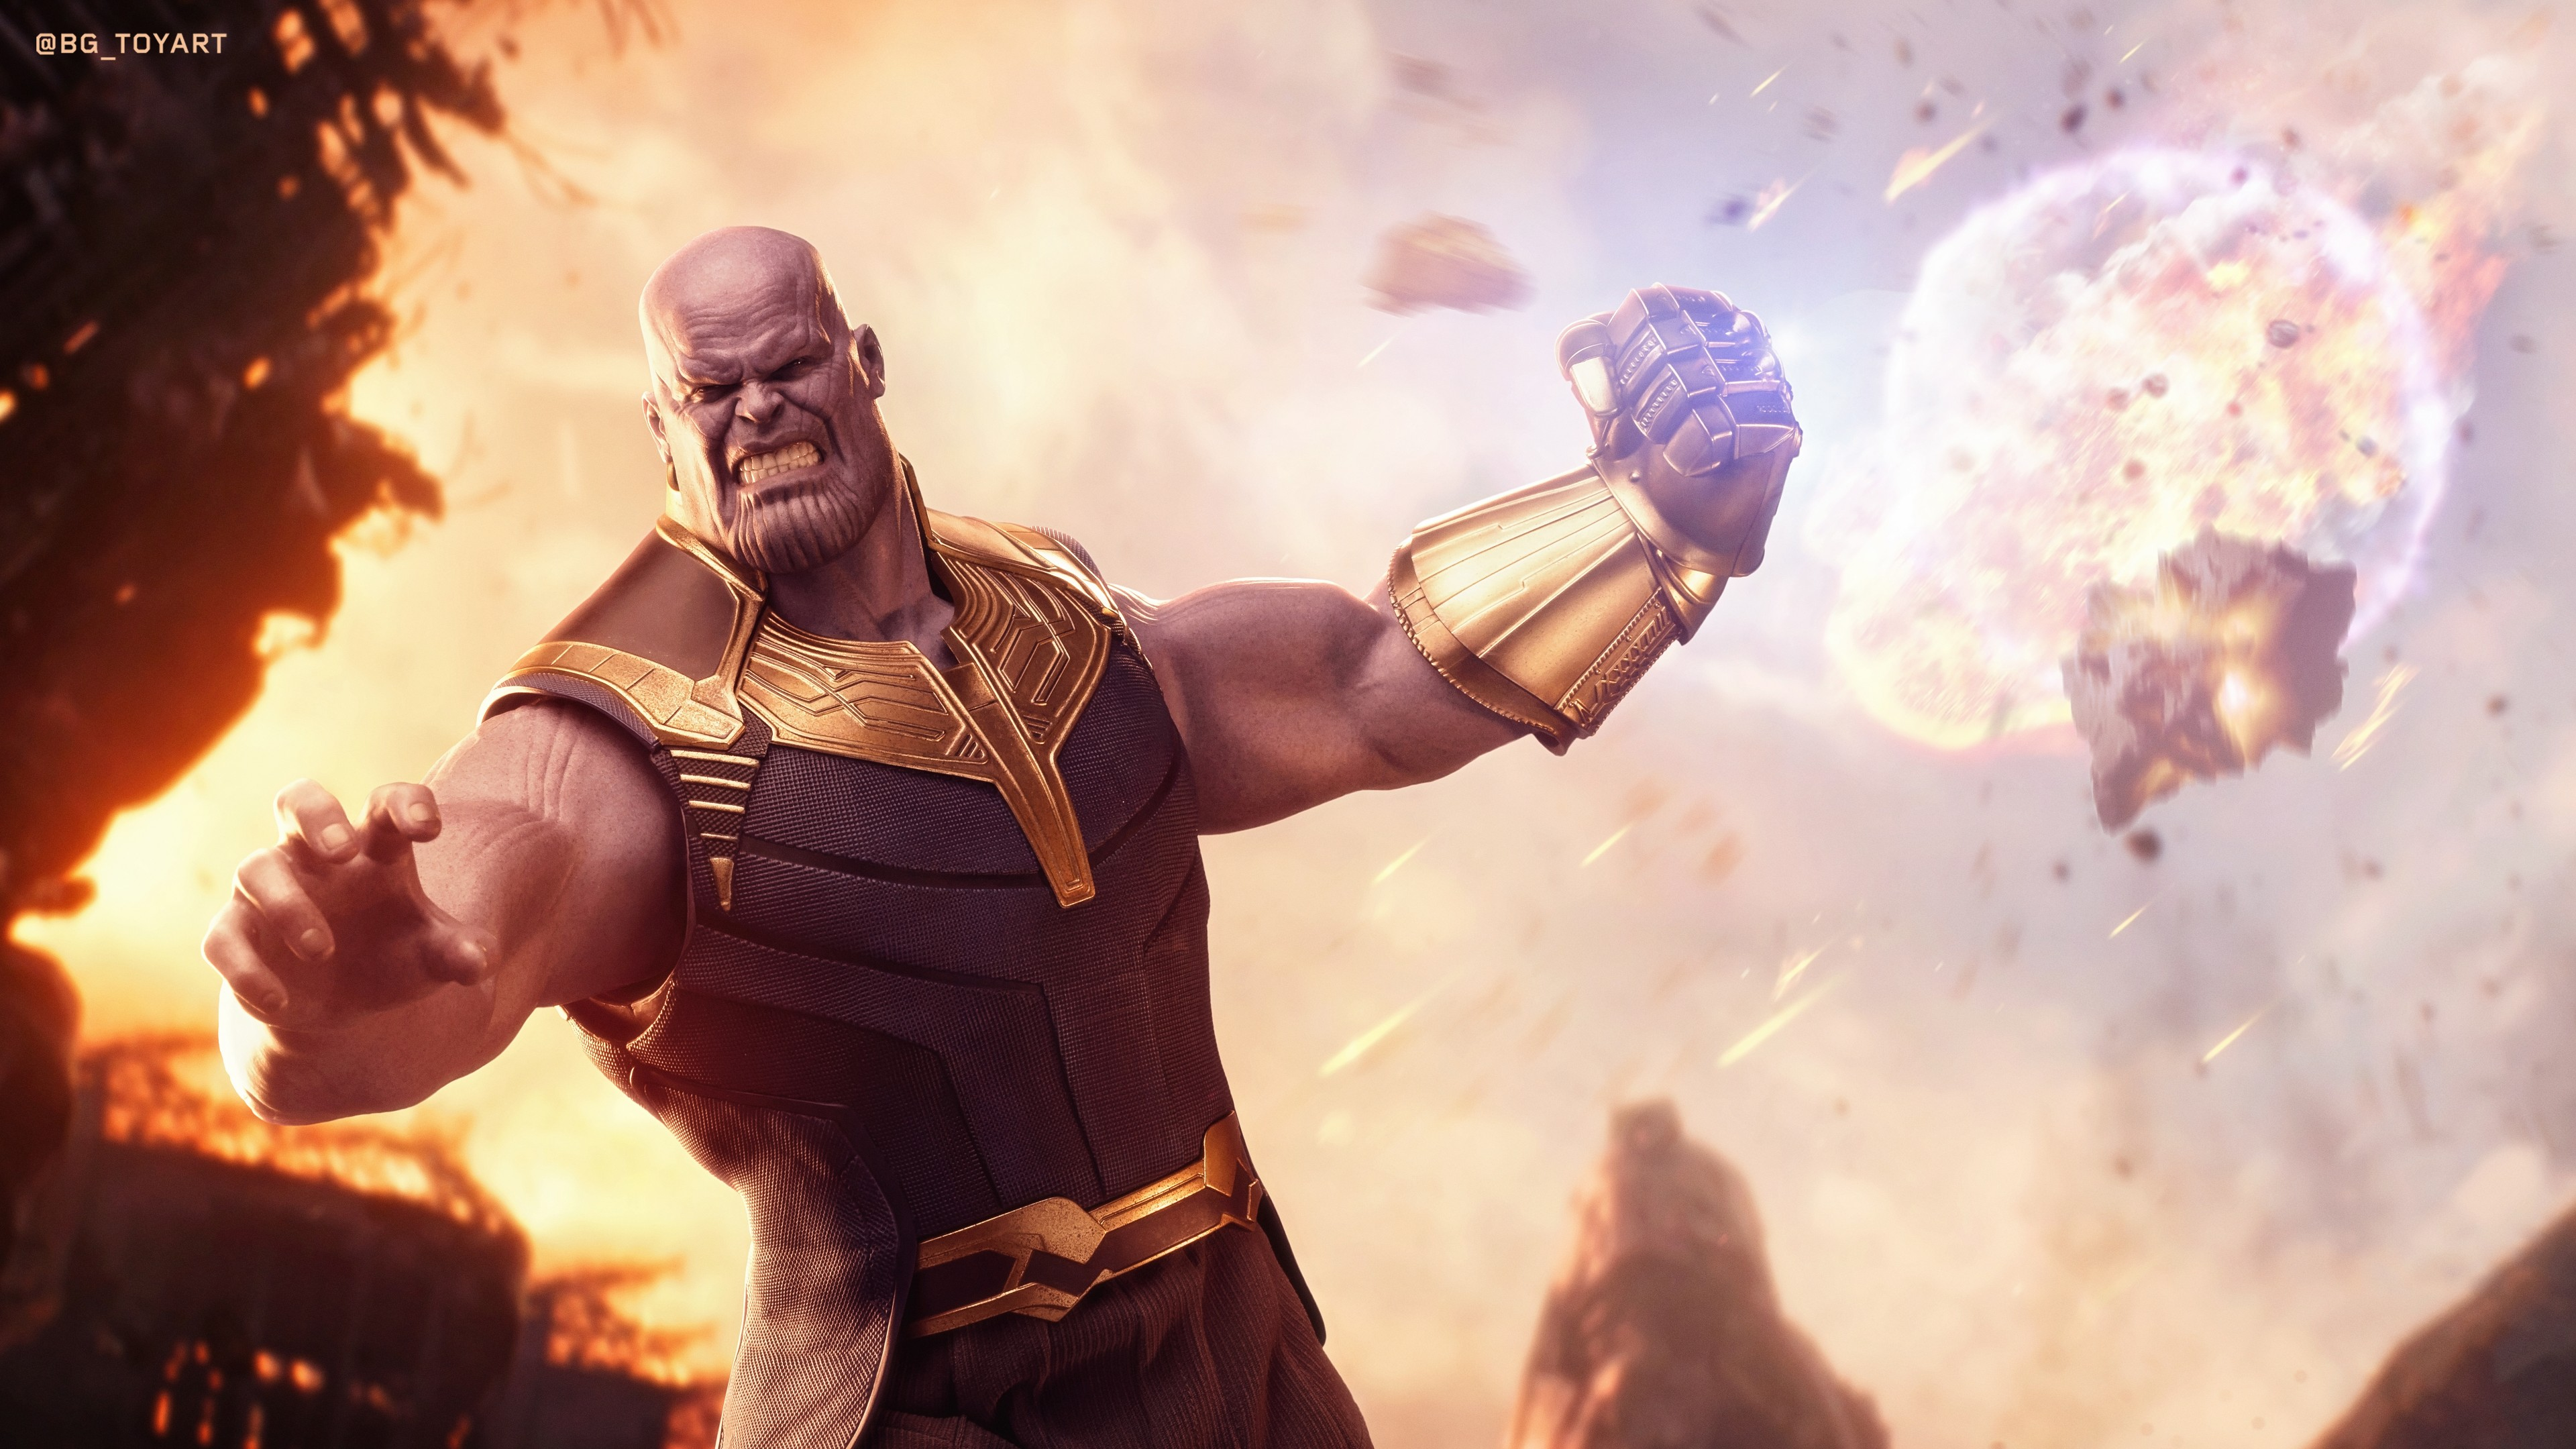 Thanos HD Wallpaper 4K Background